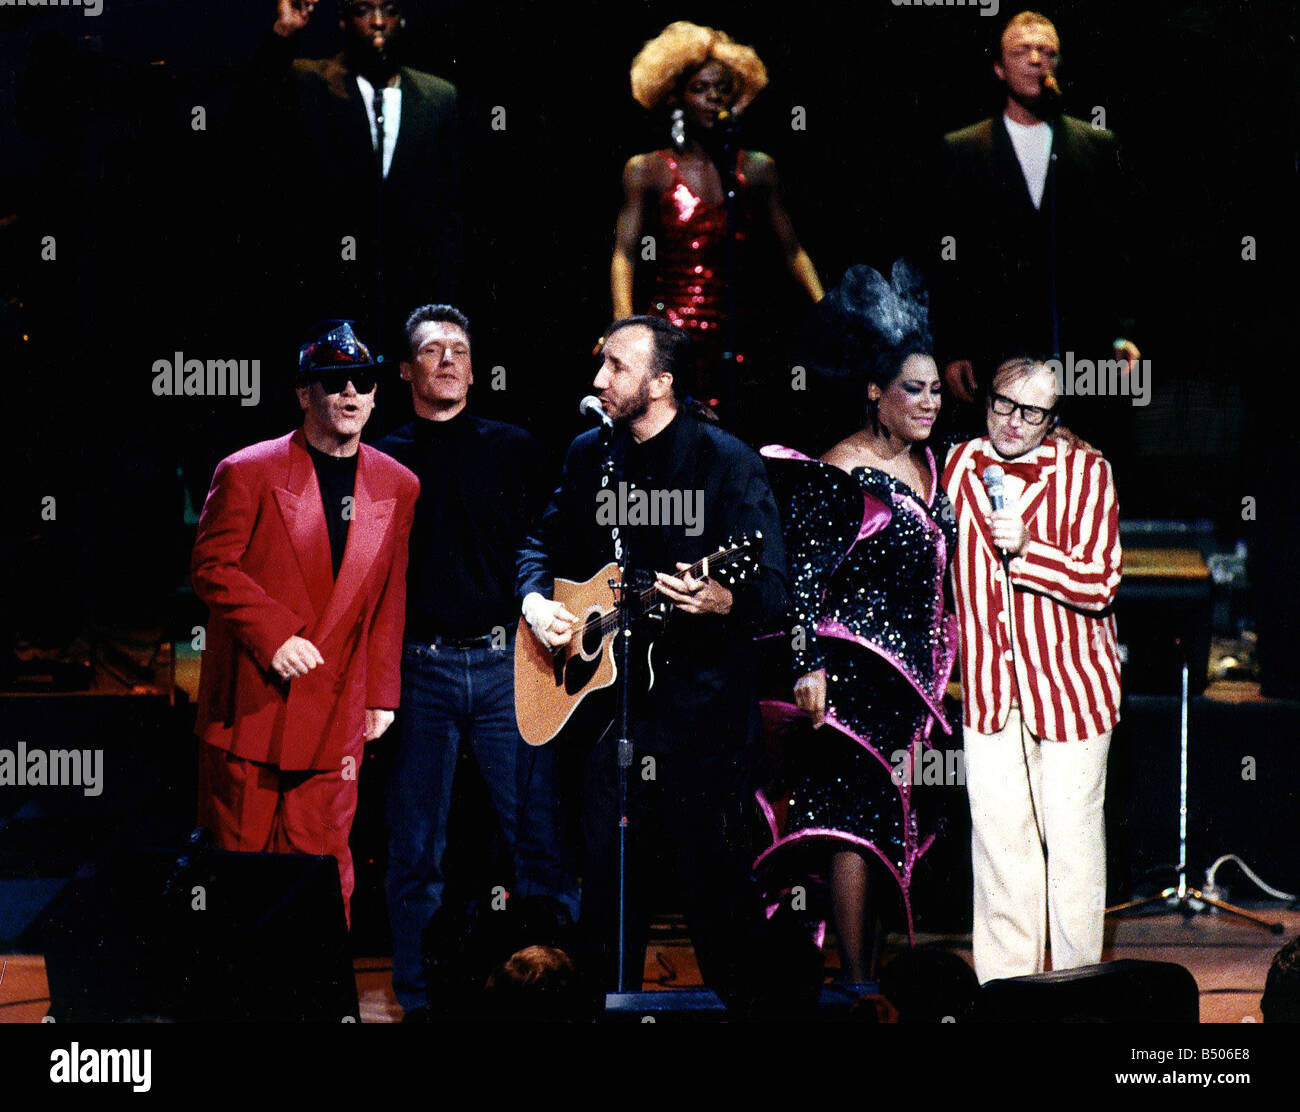 The Who pop group with various singers Elton John singer left in red suit and Steve Winwood 2nd left Pete Townshend - Stock Image